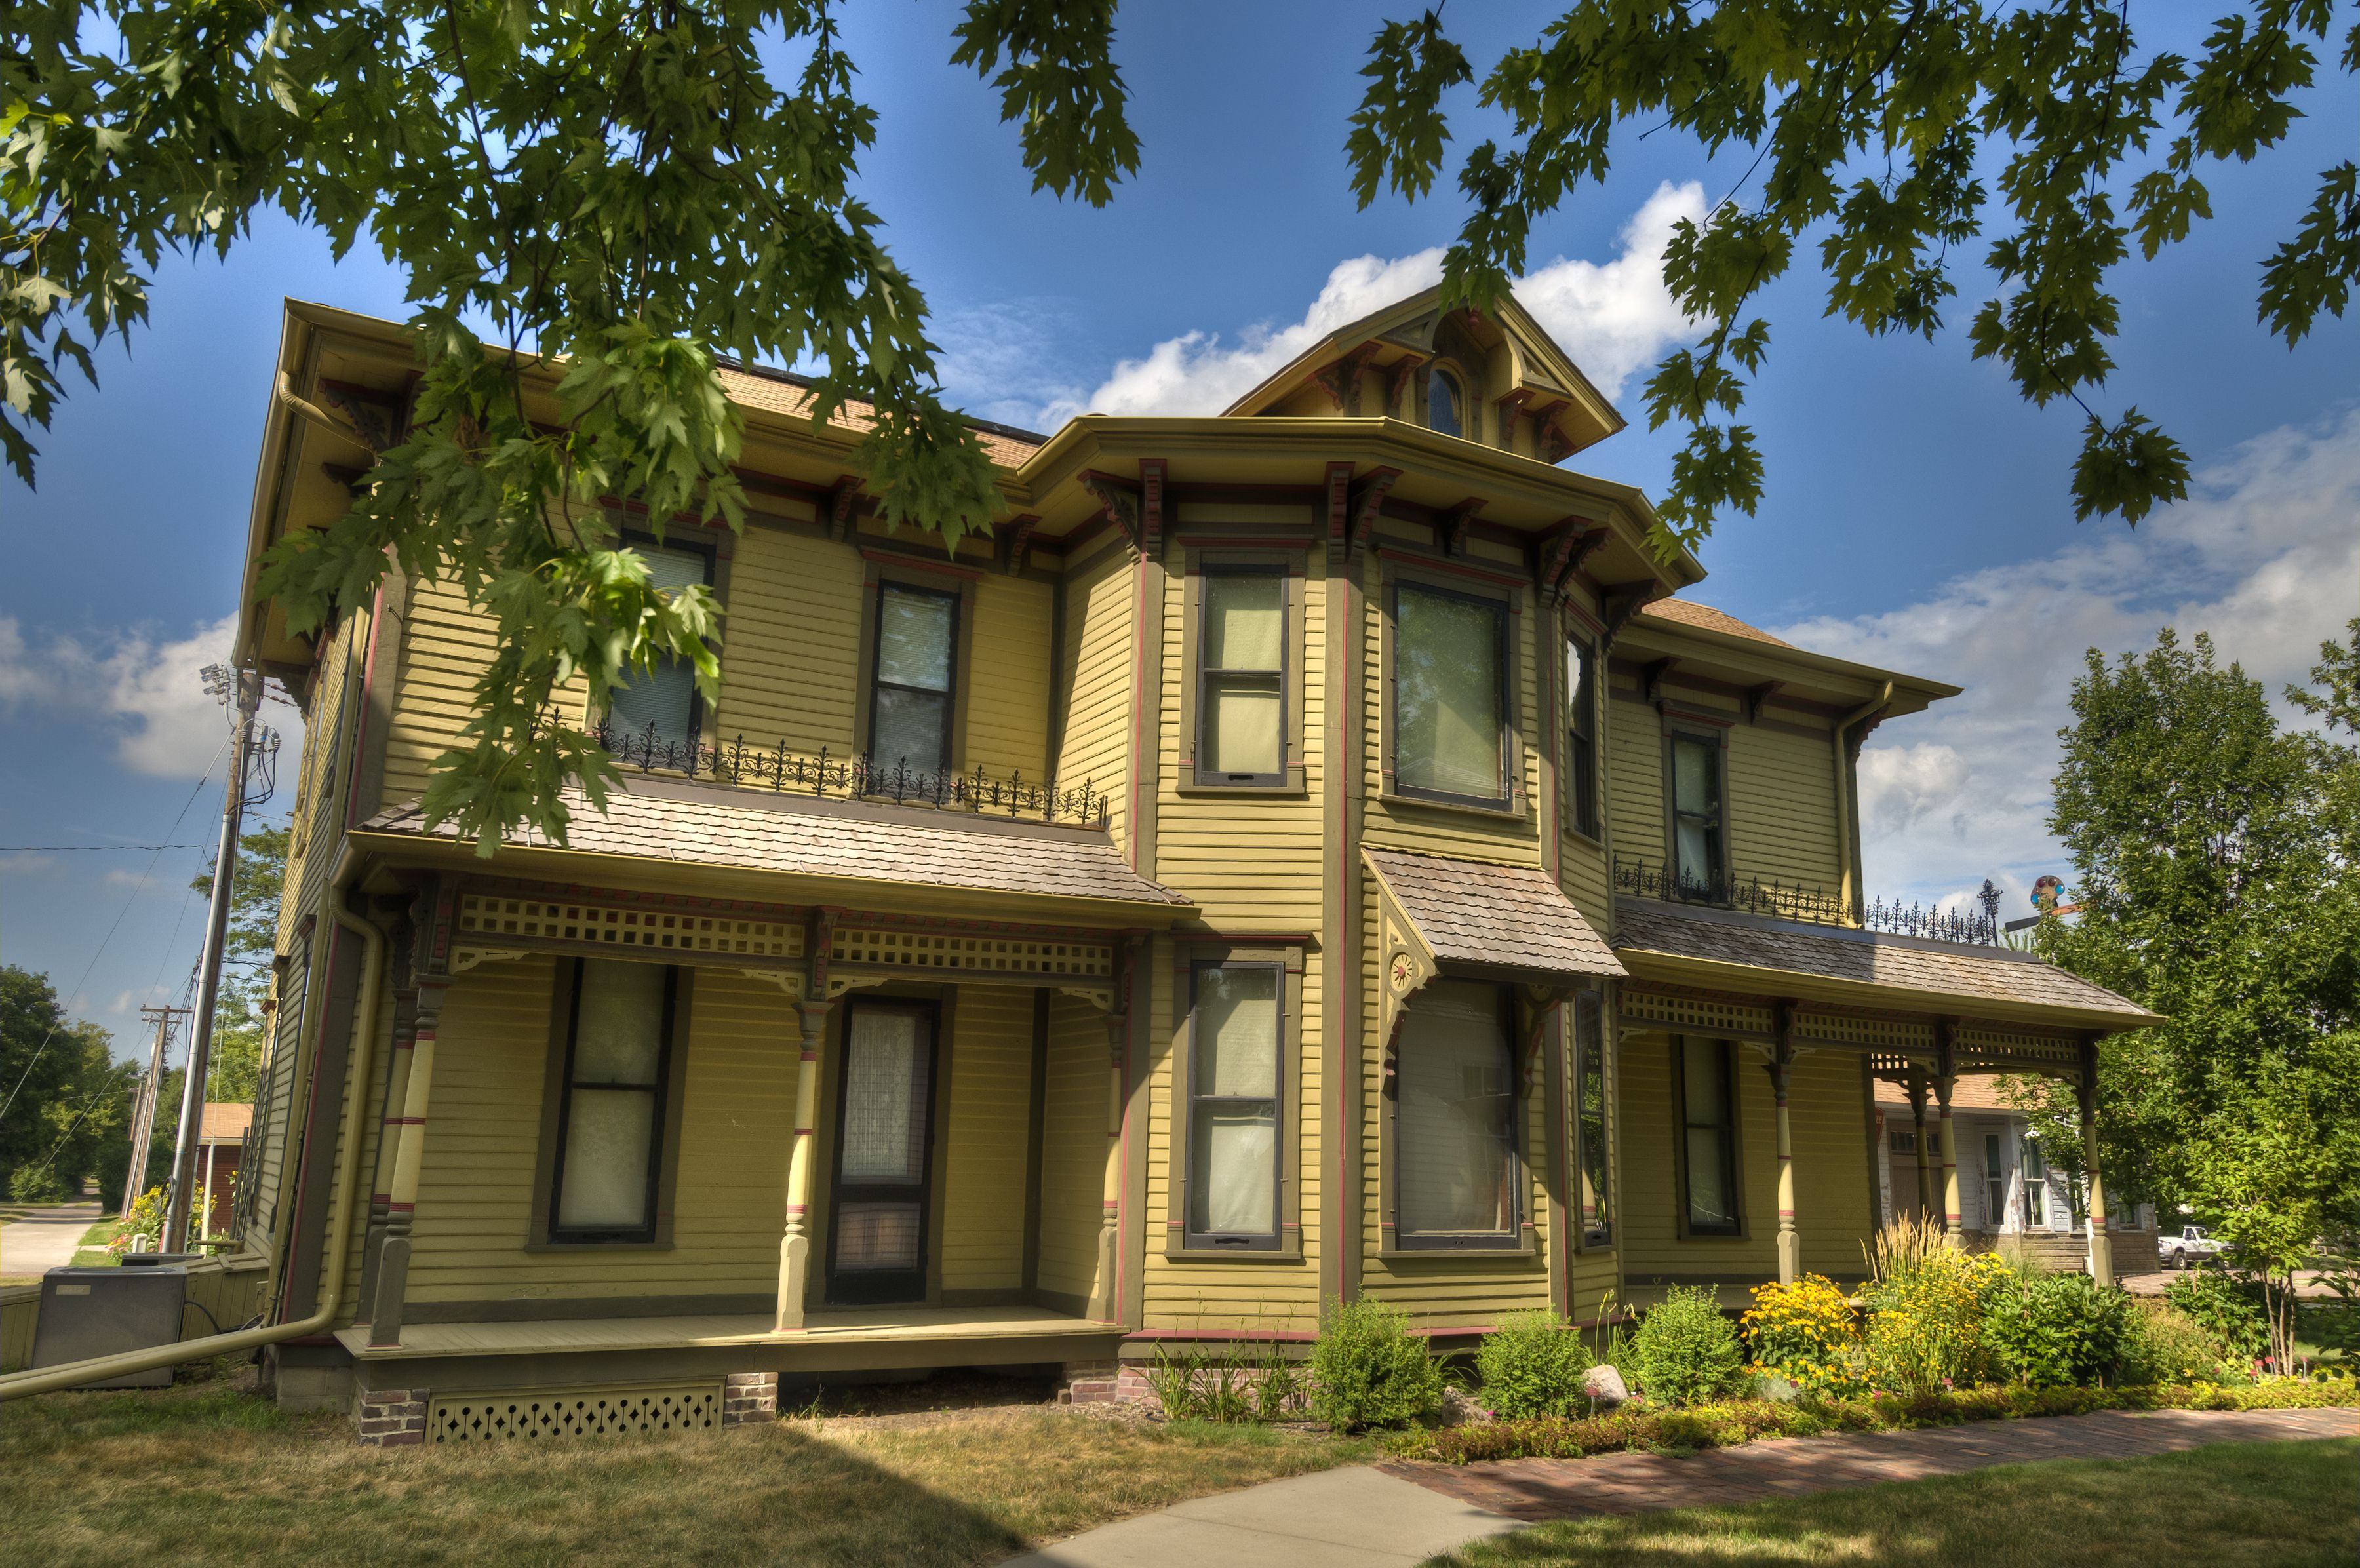 The Beckwith House Built In 1886 By Corn Palace Co Founder Louis Beckwith Preserved And Restored At The Dakot Discovery Museum 50 States Of Usa House Styles